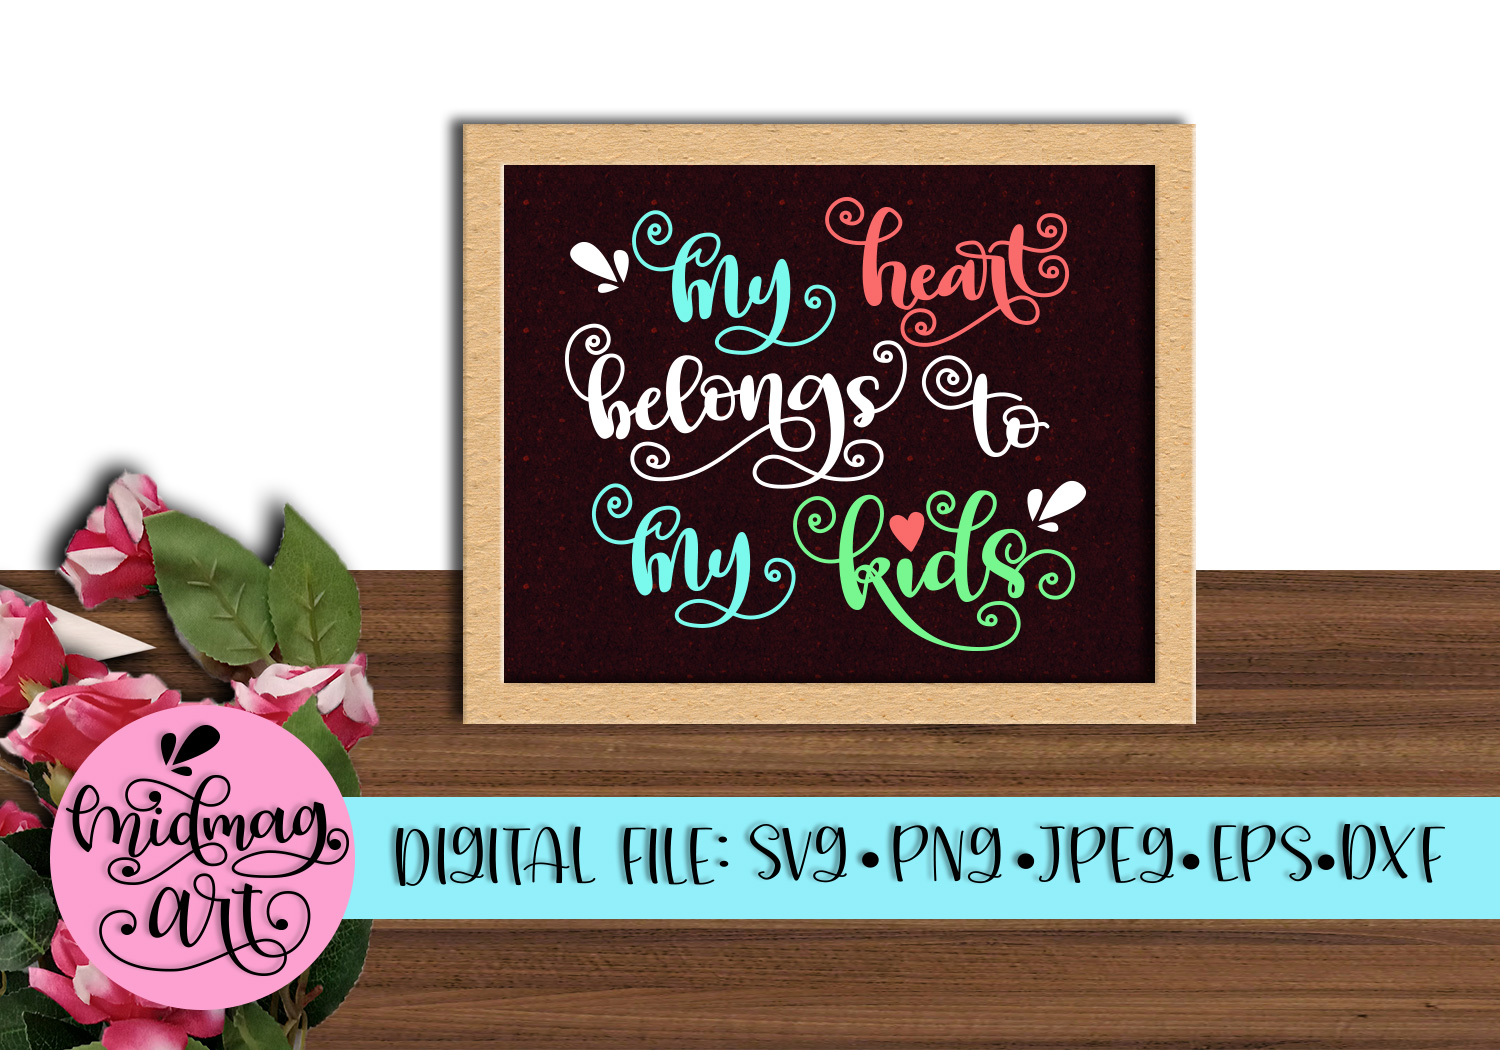 Download Free My Heart Belongs To My Kids Svg Graphic By Midmagart Creative for Cricut Explore, Silhouette and other cutting machines.